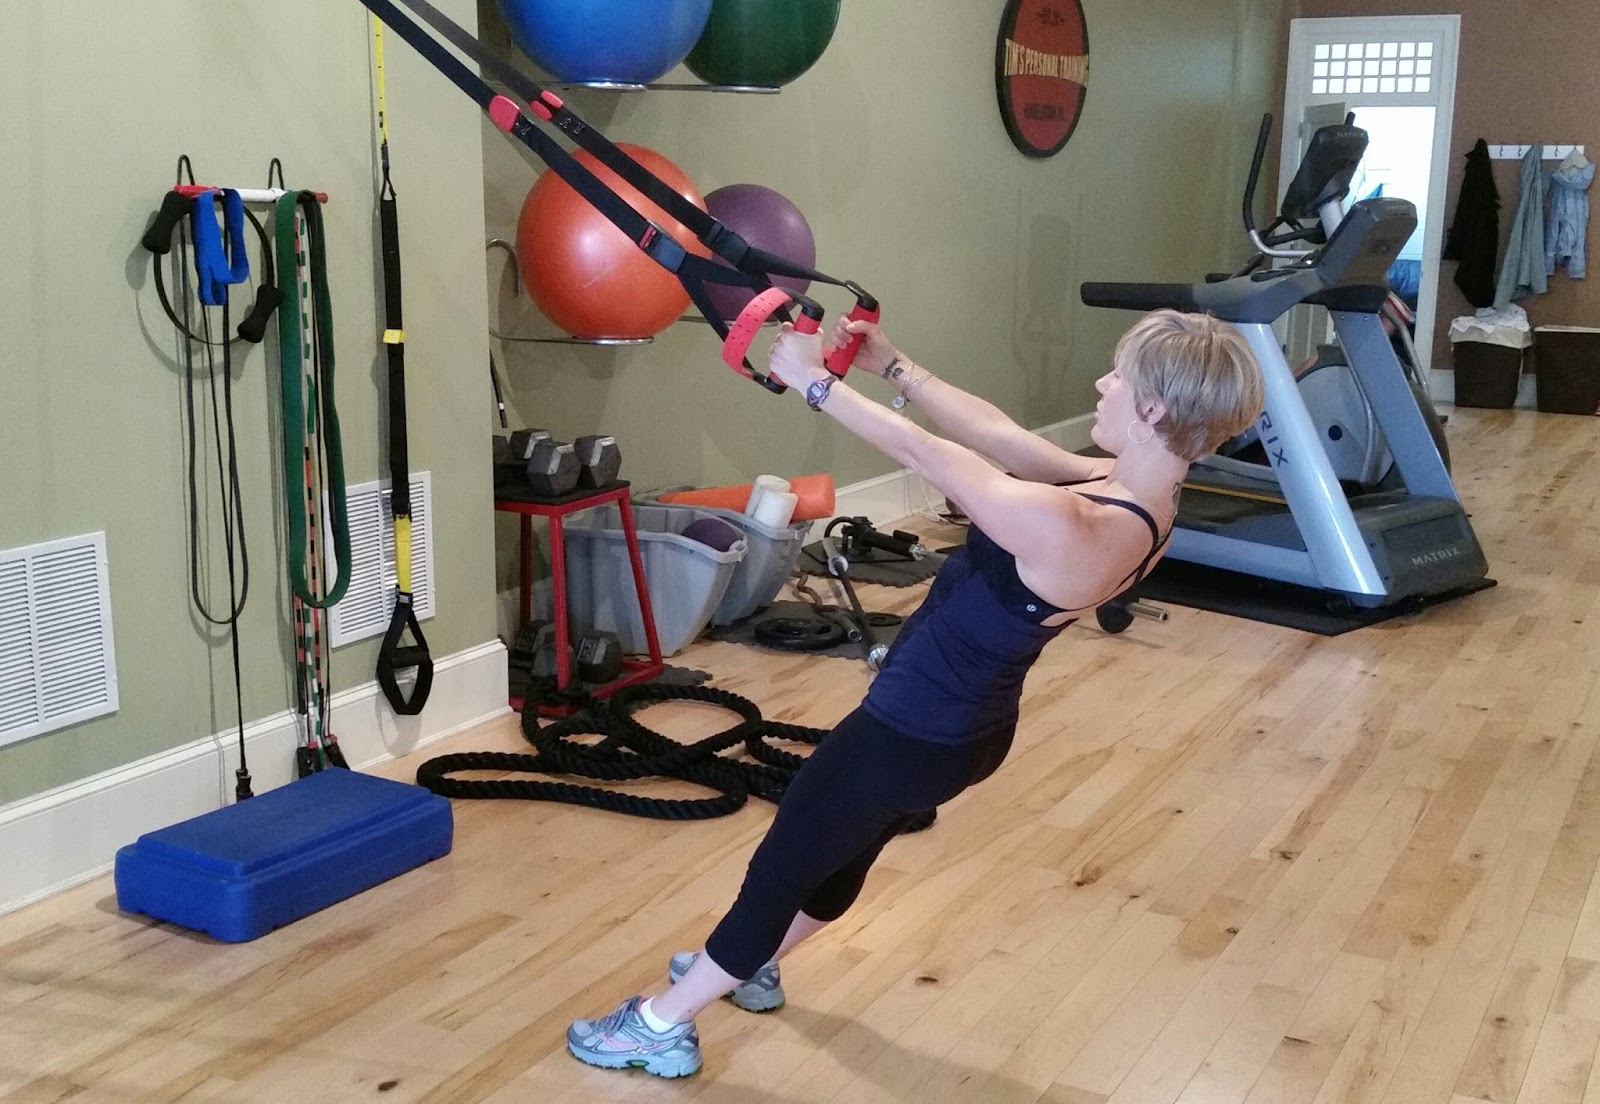 Momma Keeps It 100 A Personal Trainers Advice Small Changes To Simple Circuit Training Things If Youre Loving The Info In Her Post And Want More Of Expertise Get Touch With Via Email At Renetimspersonaltrainingcom